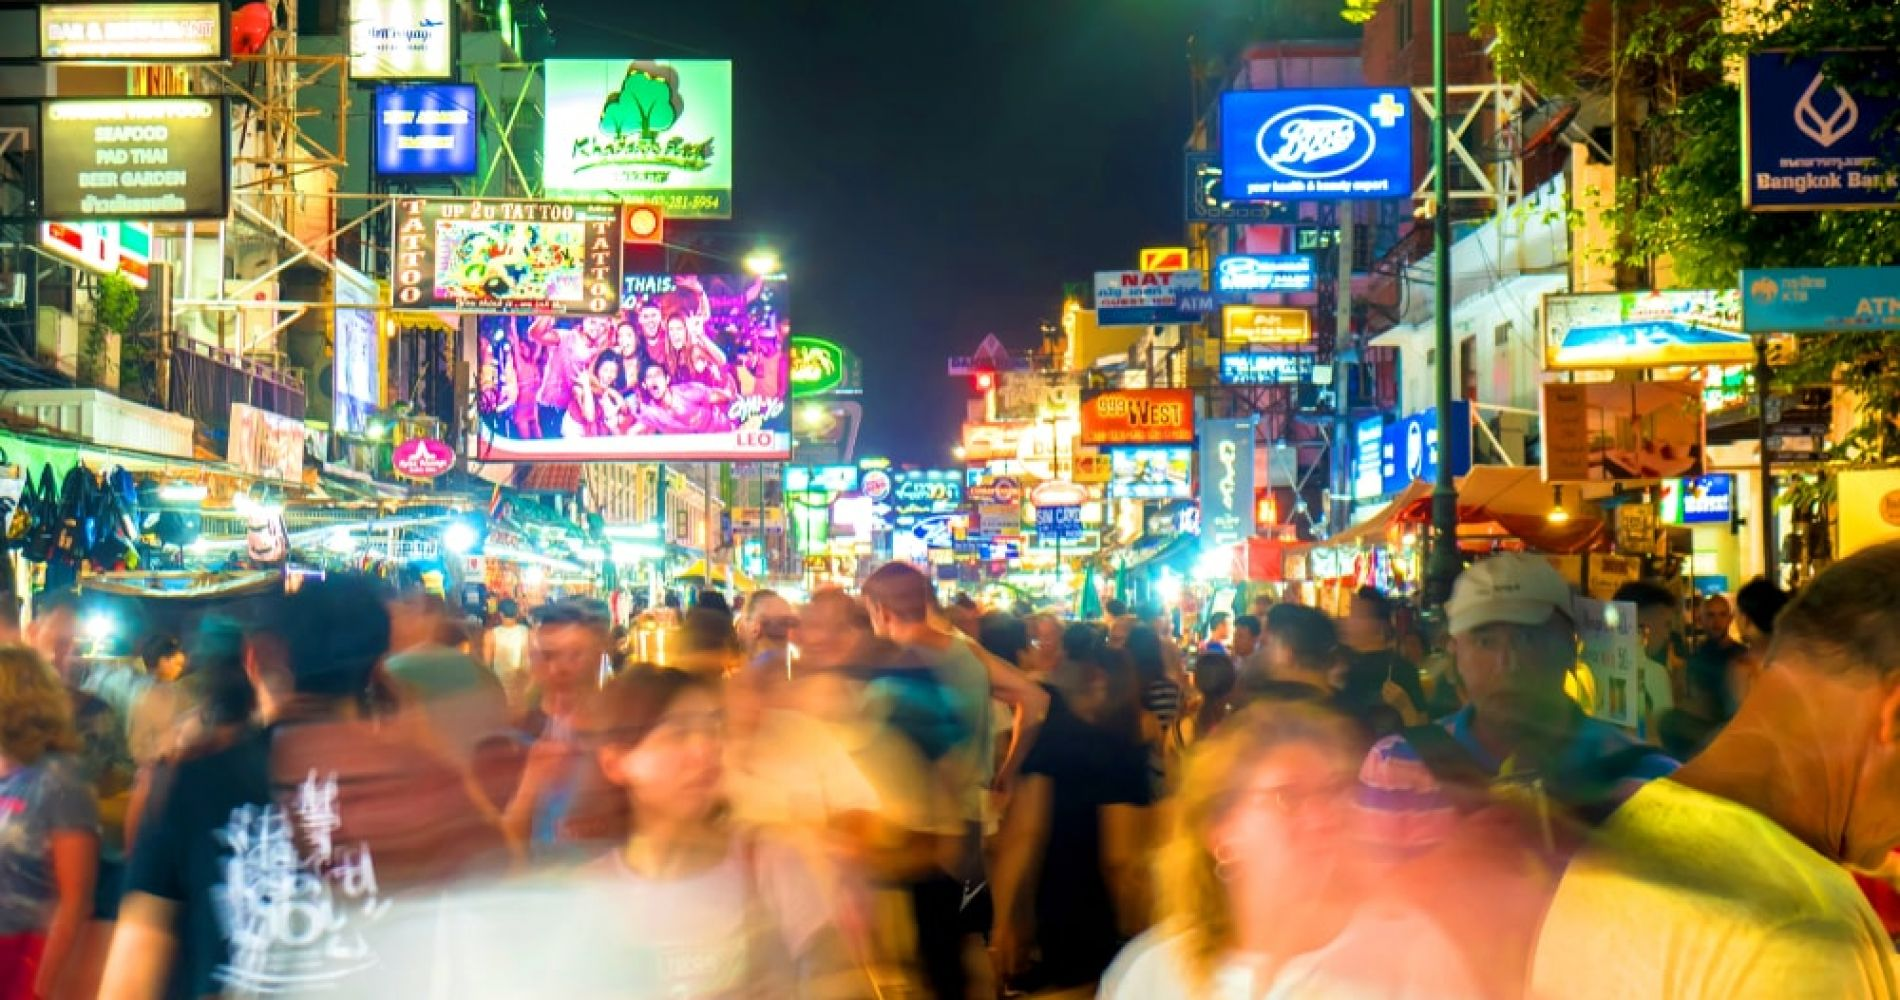 Soak in (or shop for bargains) the Khao San Road market at night time in Bangkok